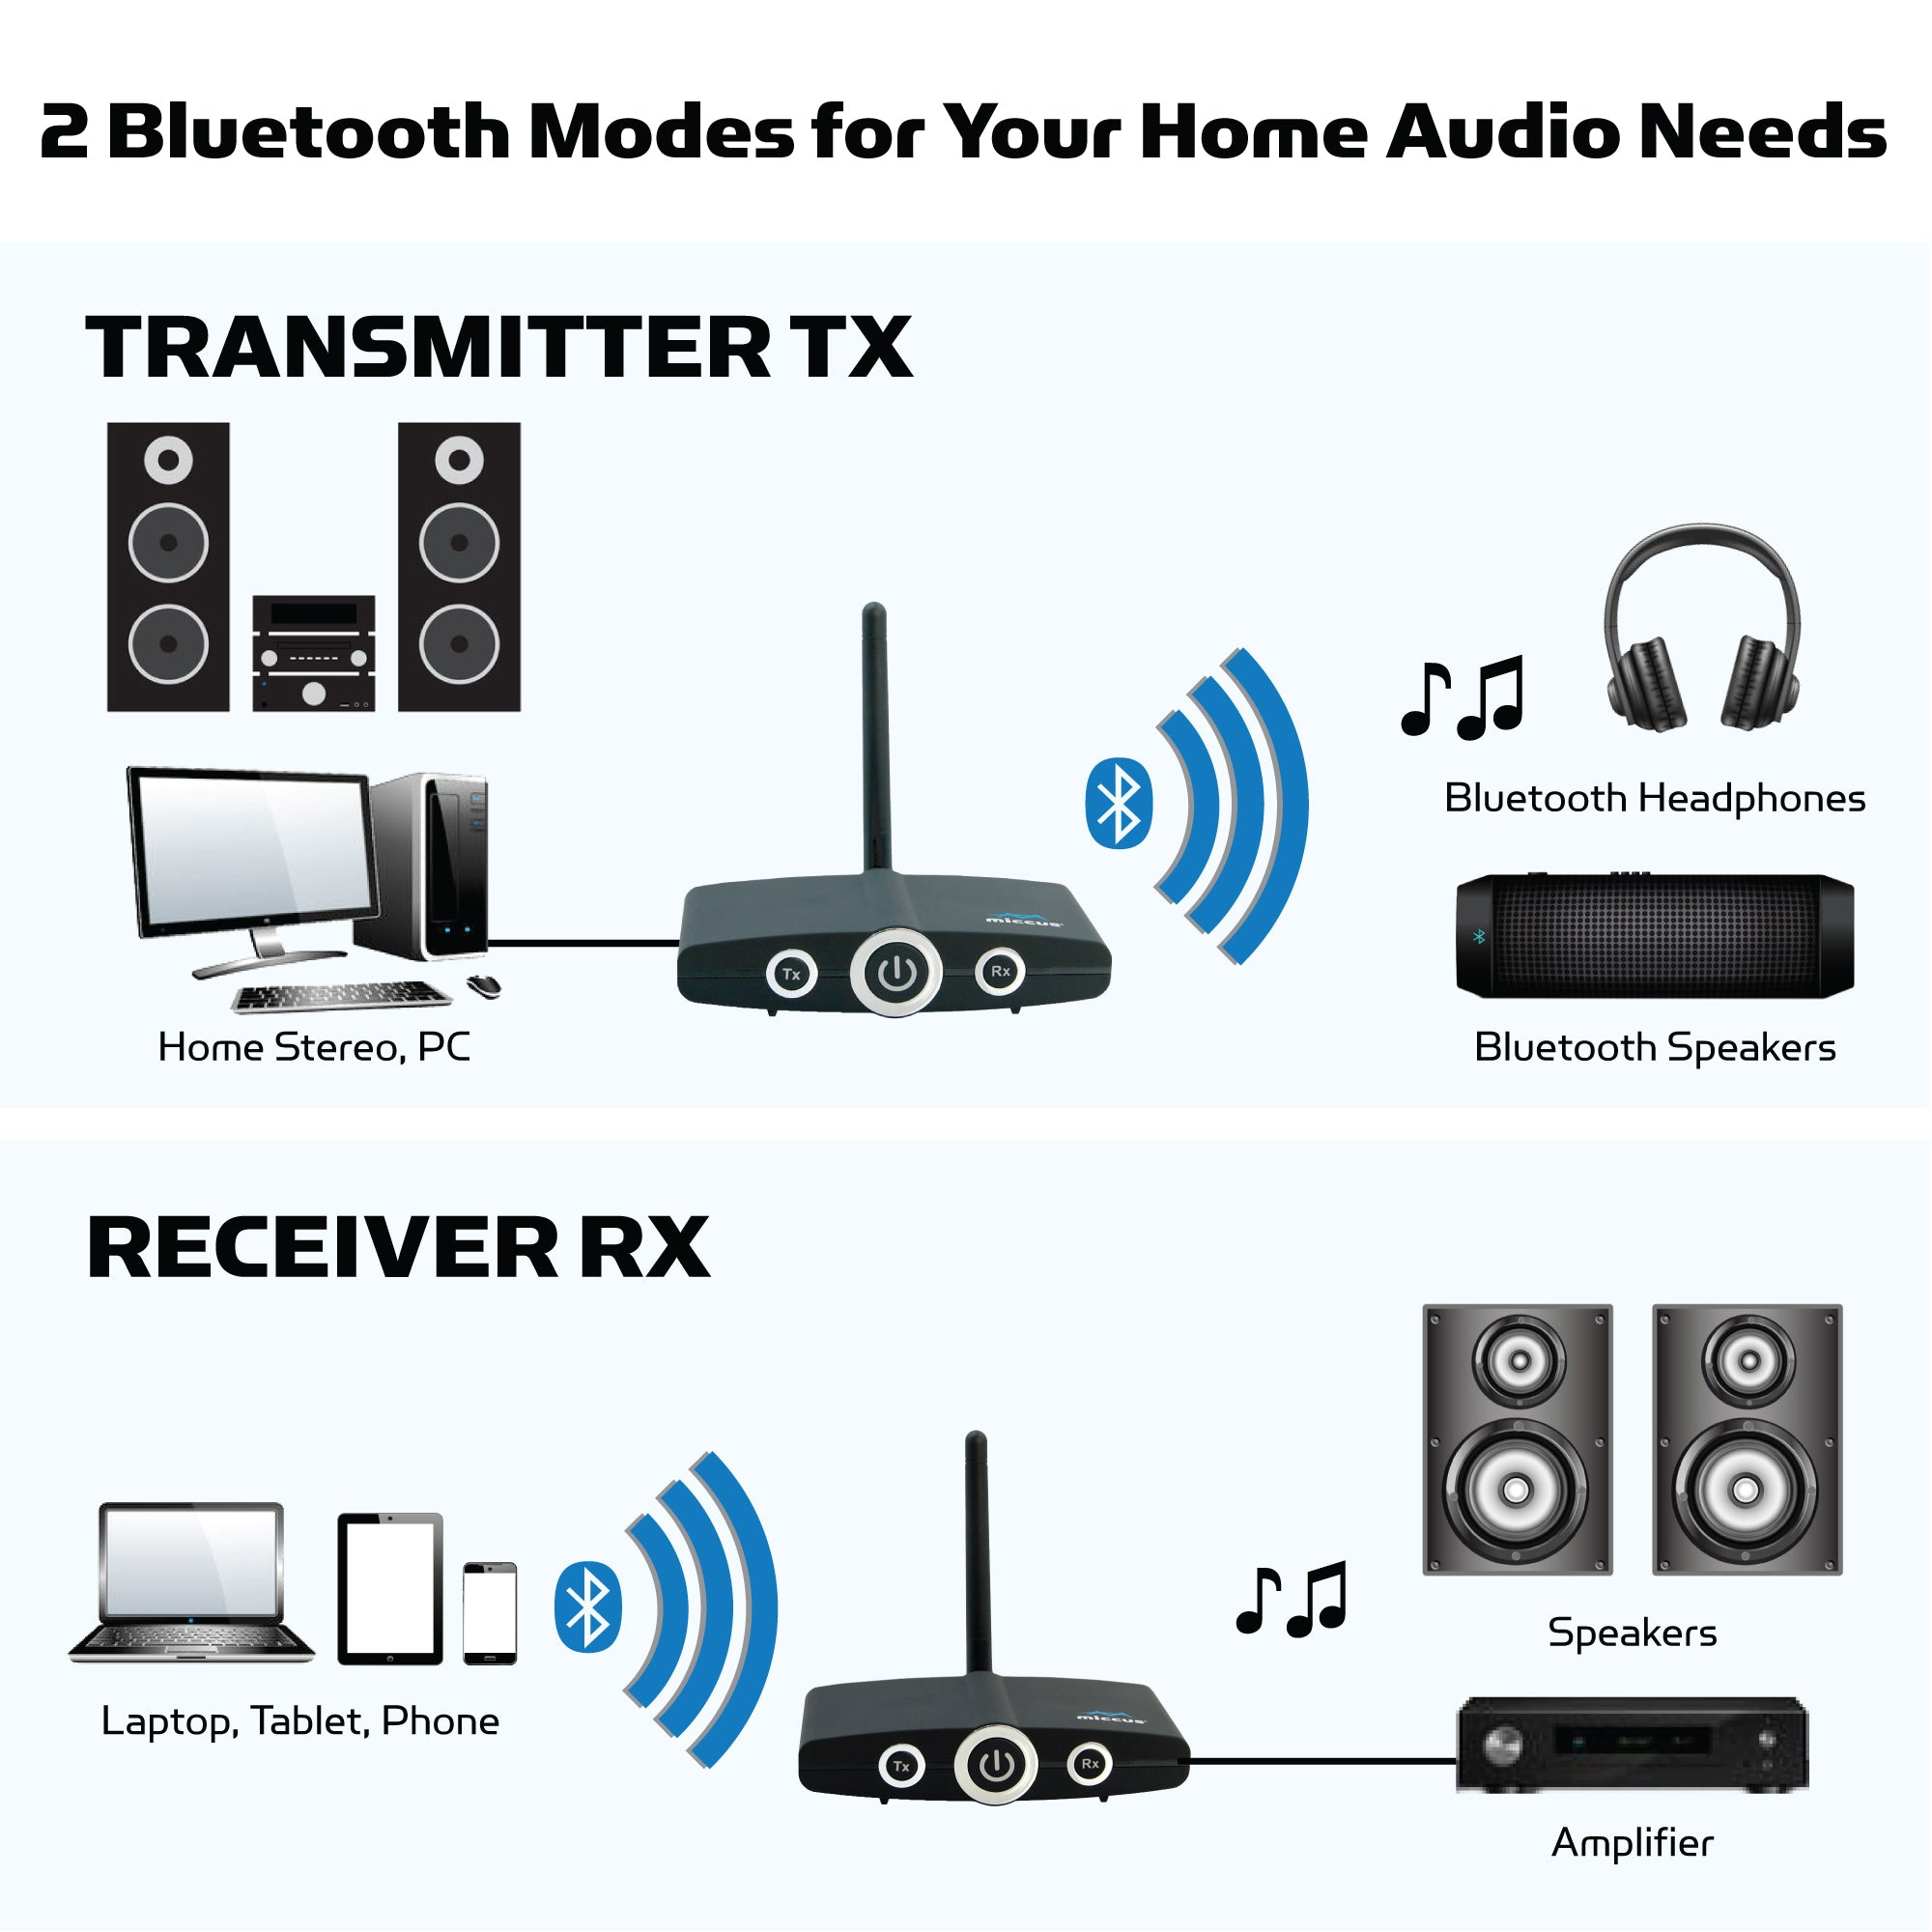 Long Range Bluetooth Transmitter and Receiver - Miccus Home